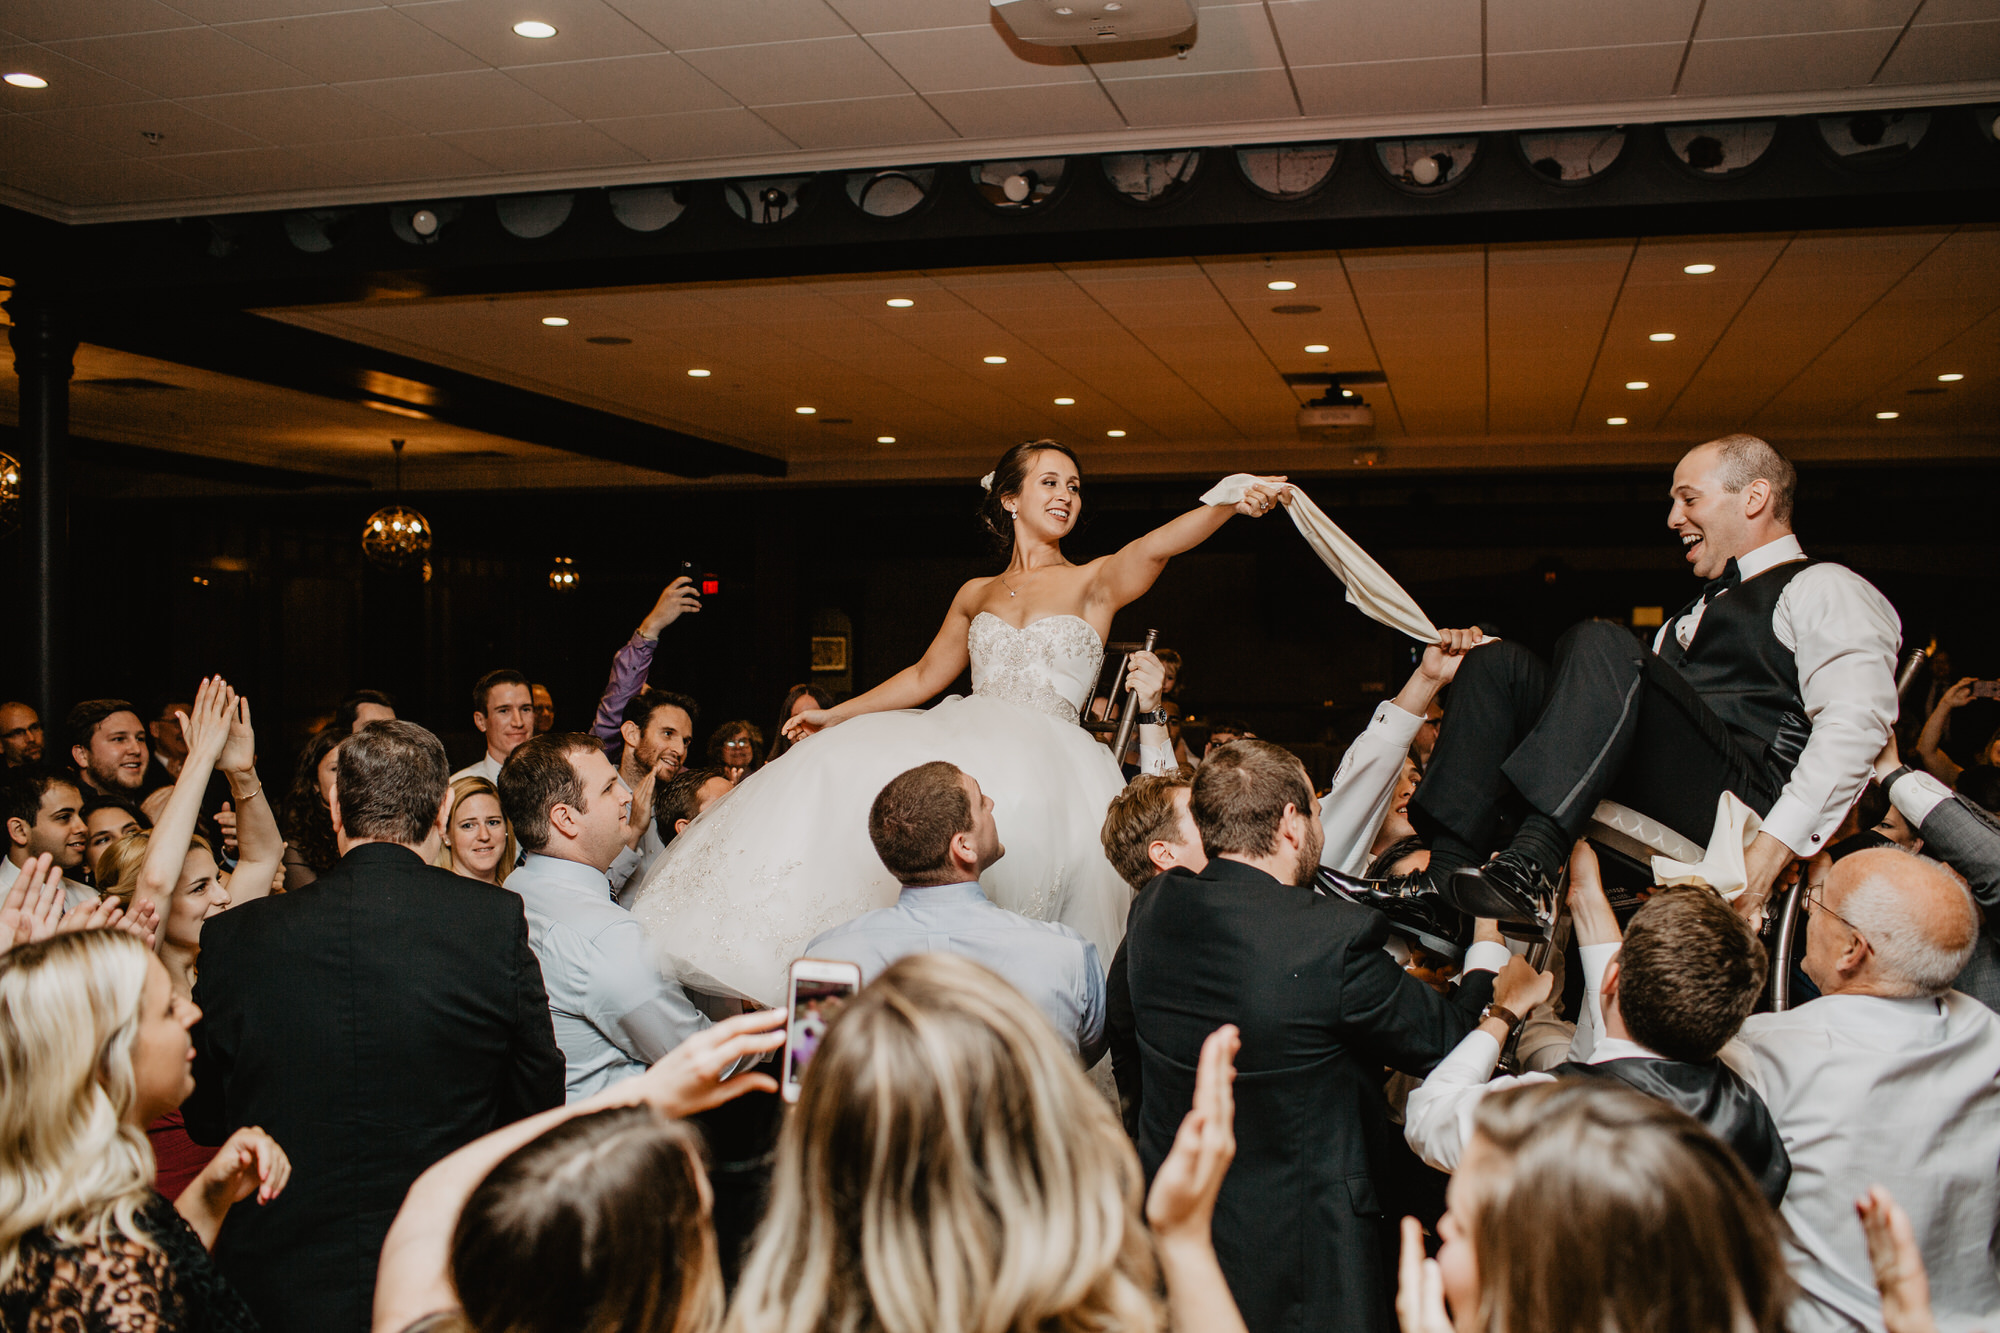 Chevy-Chase-Country-Club-Wedding-Chicago-Illinois-093.jpg